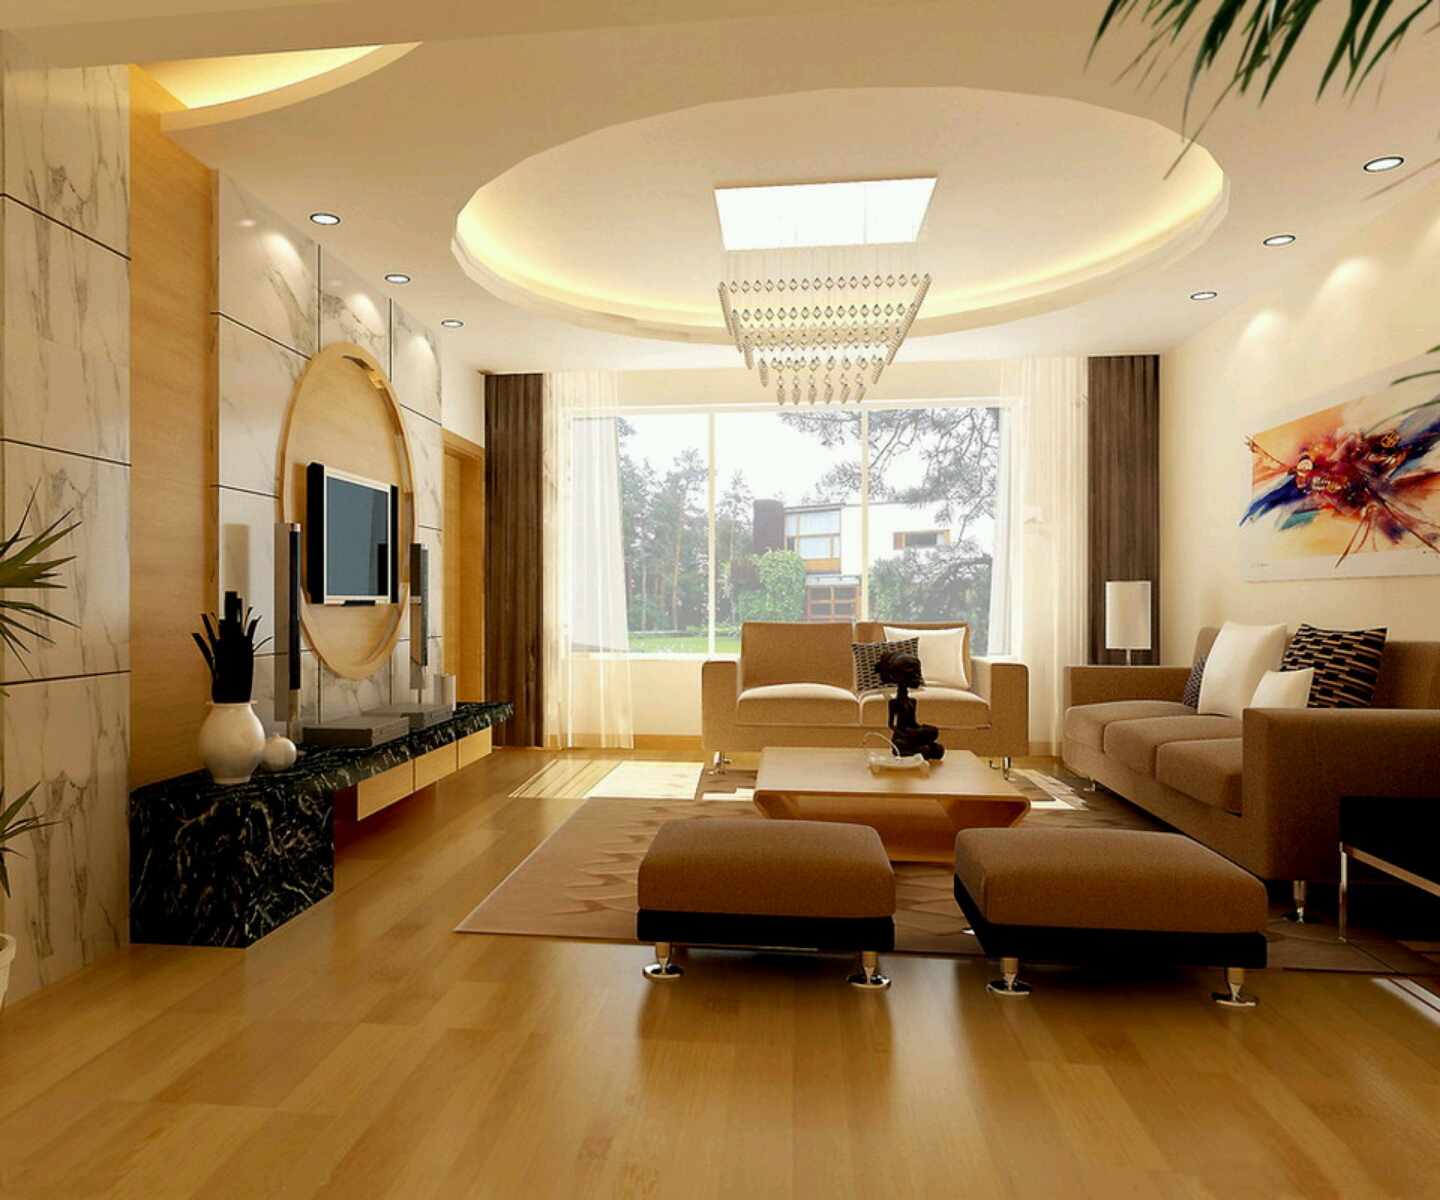 New home designs latest modern interior decoration for Interior house design ceiling